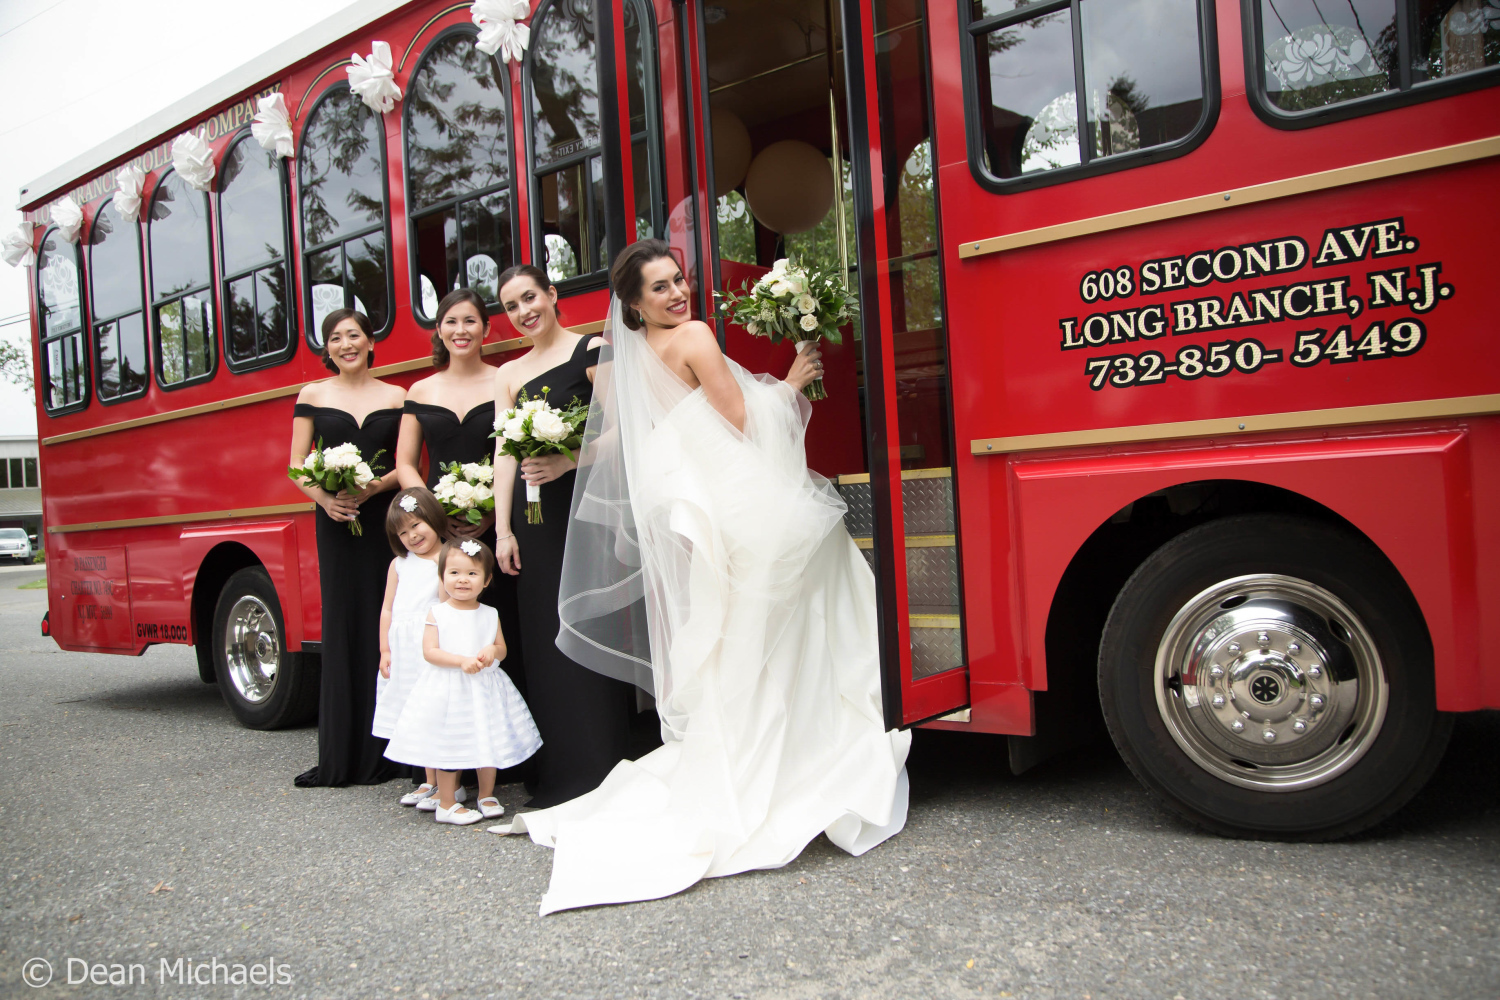 wedding-photographer-gallery-2-E4CS740QAH69.jpg